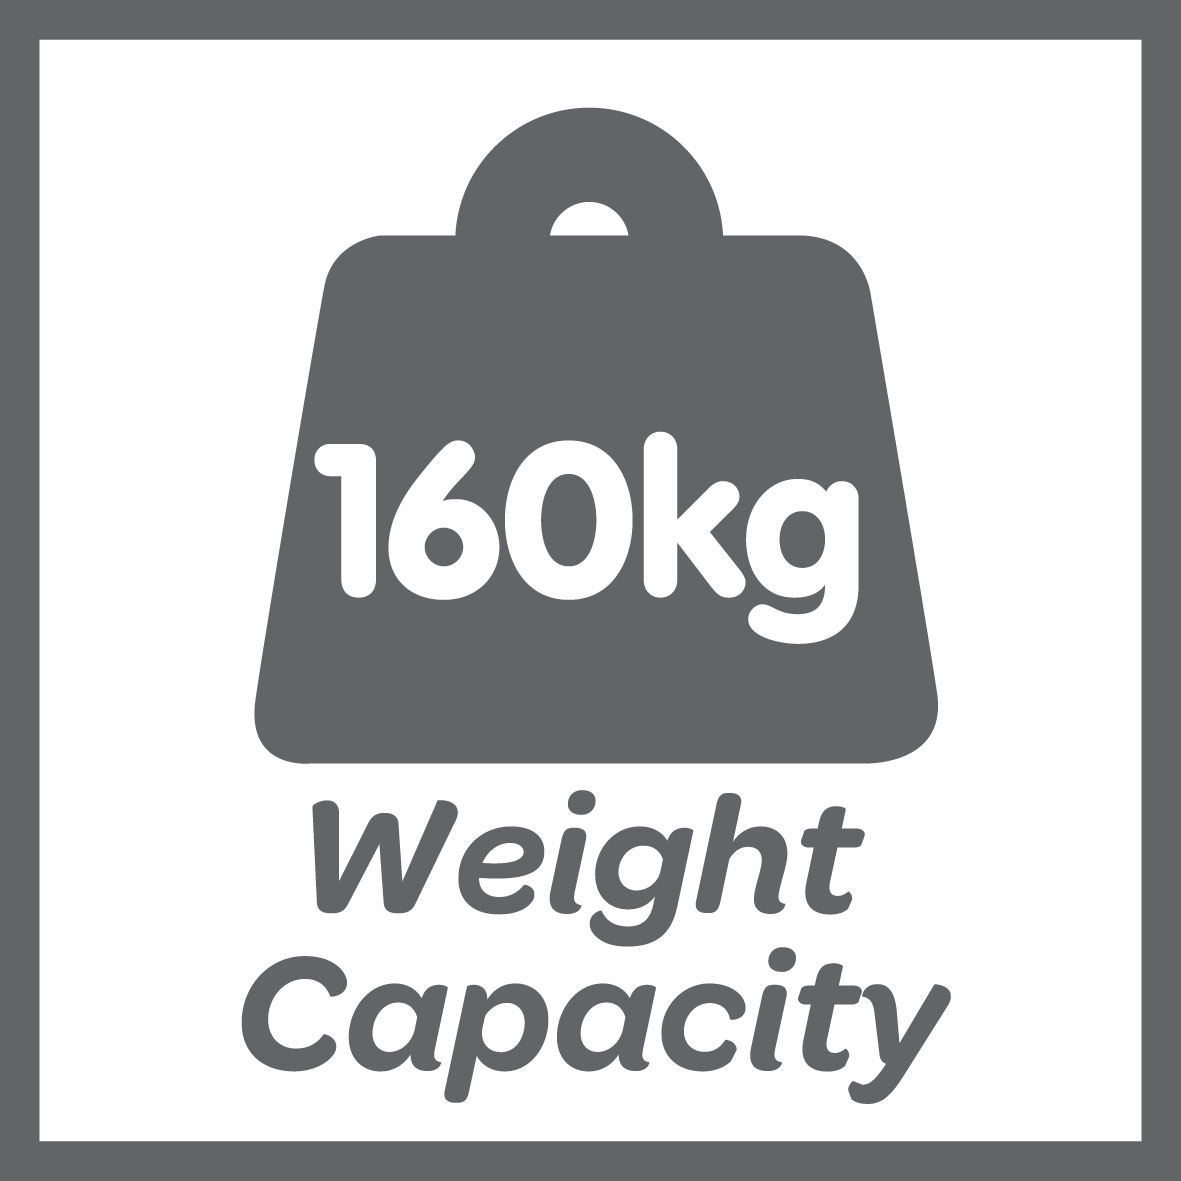 This product has a 160kg weight limit